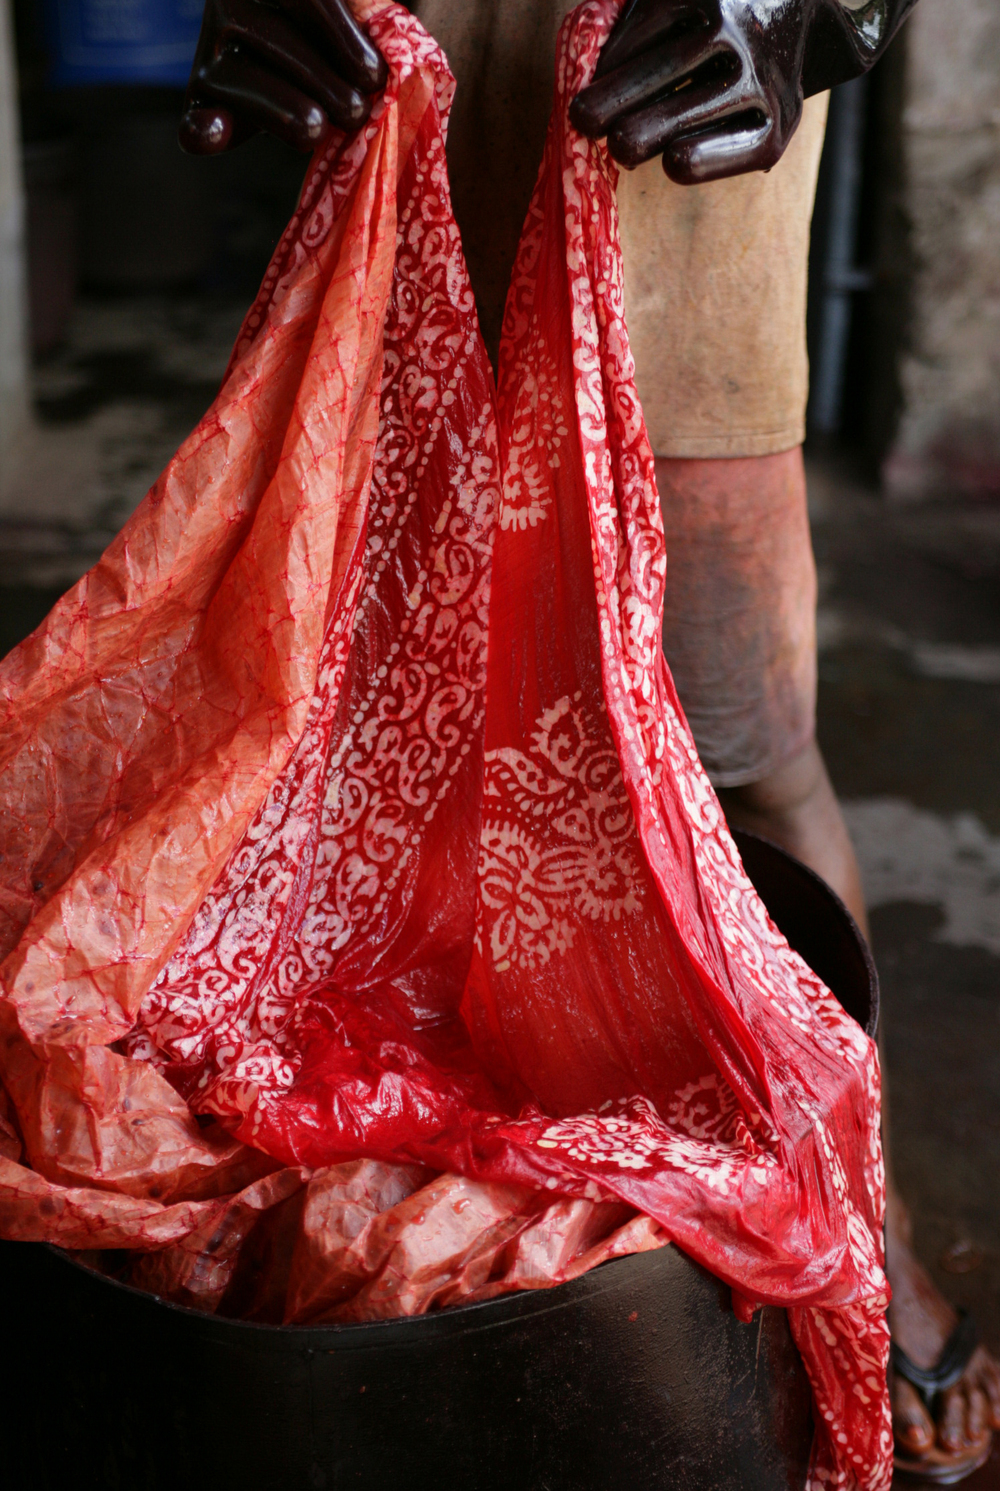 Red dye. Batik dyeing in India. Indigo Handloom.